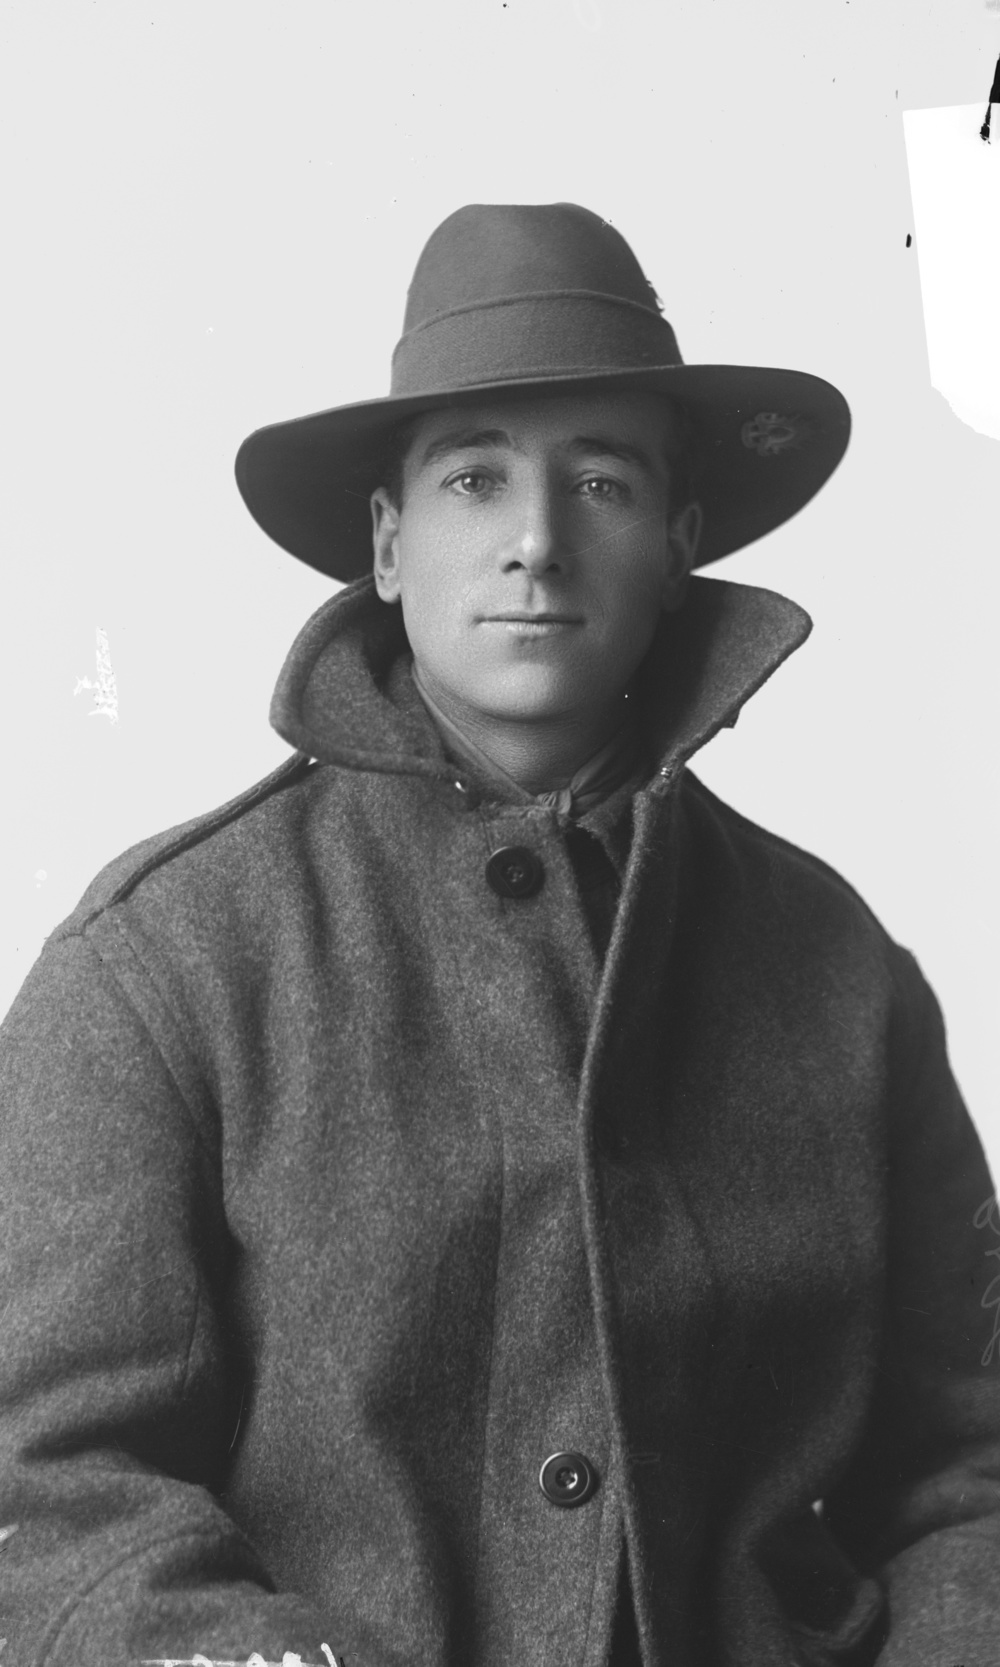 Photographed at the Dease Studio, 117 Barrack Street Perth WA Image courtesy of the State Library of Western Australia:108584PD